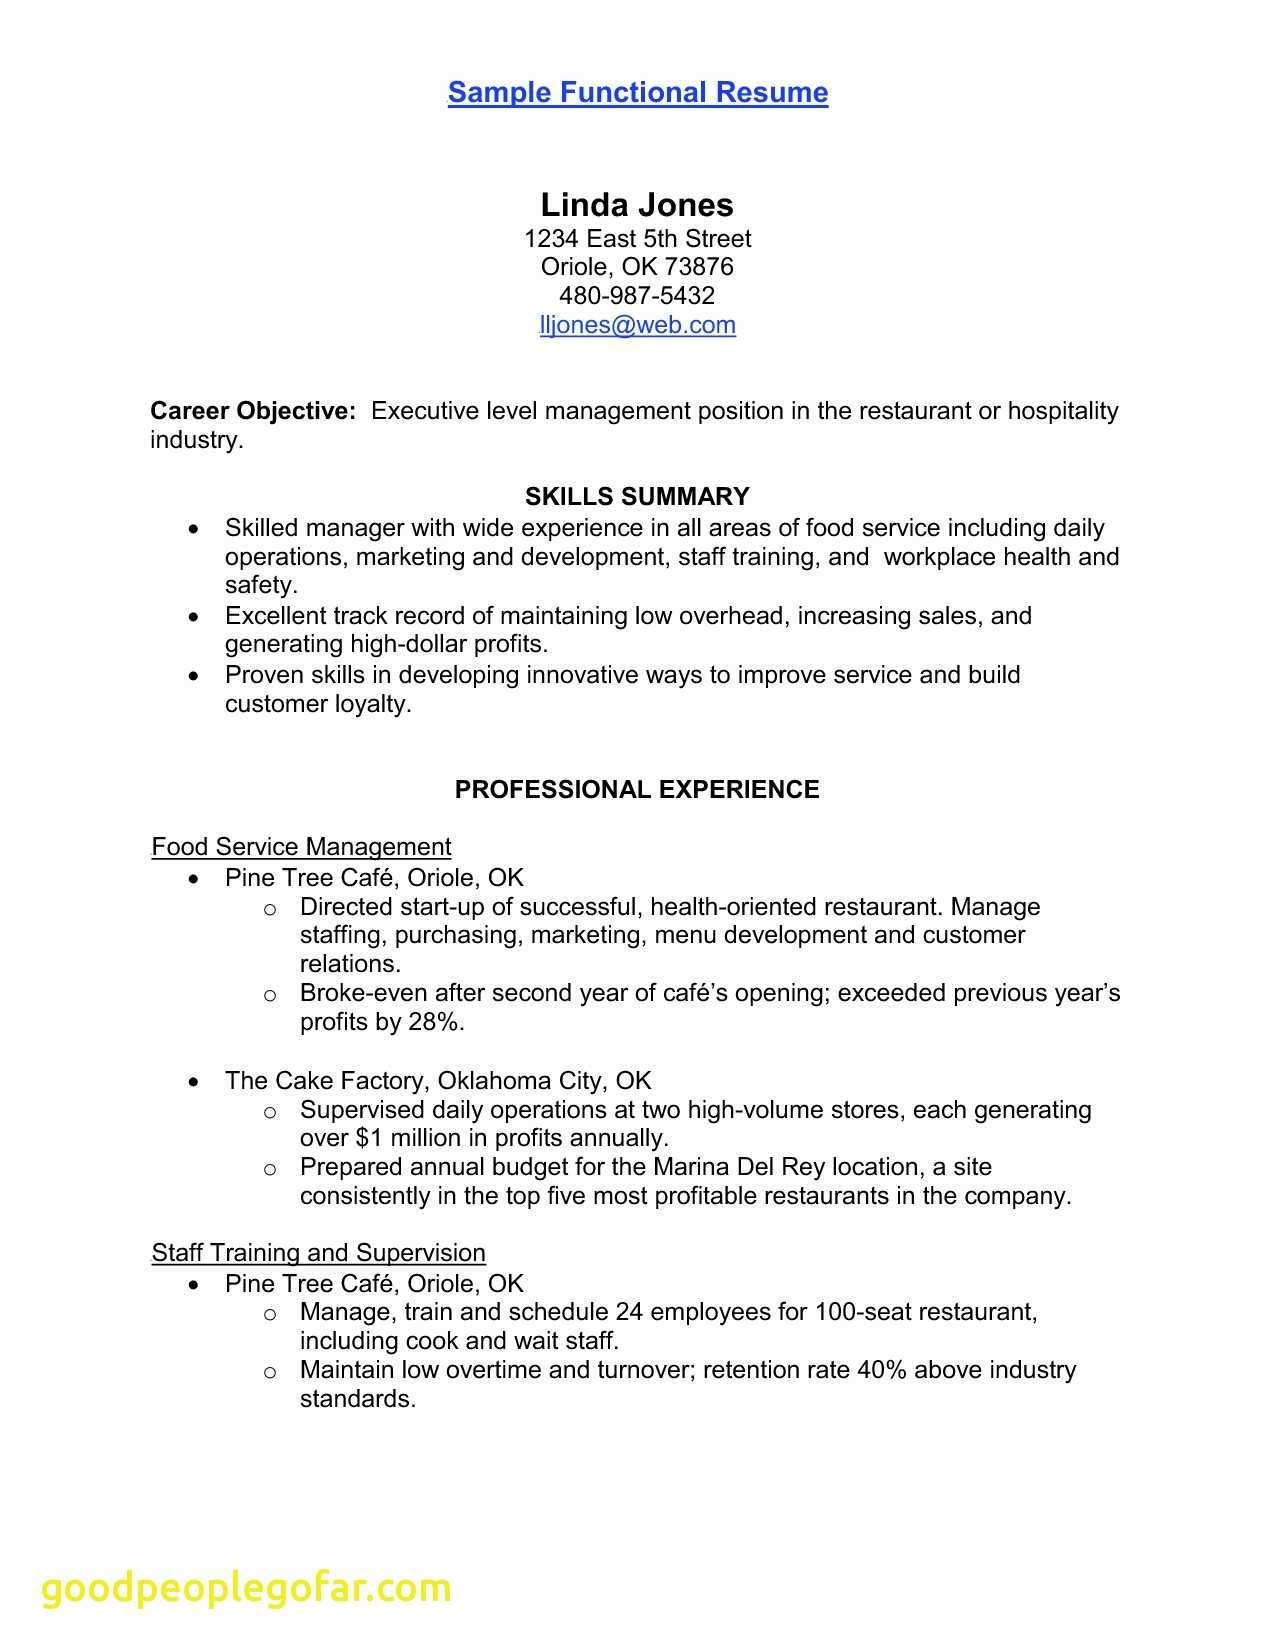 Resume Template Electrician - Journeyman Electrician Resume Best Electrical Resume Elegant